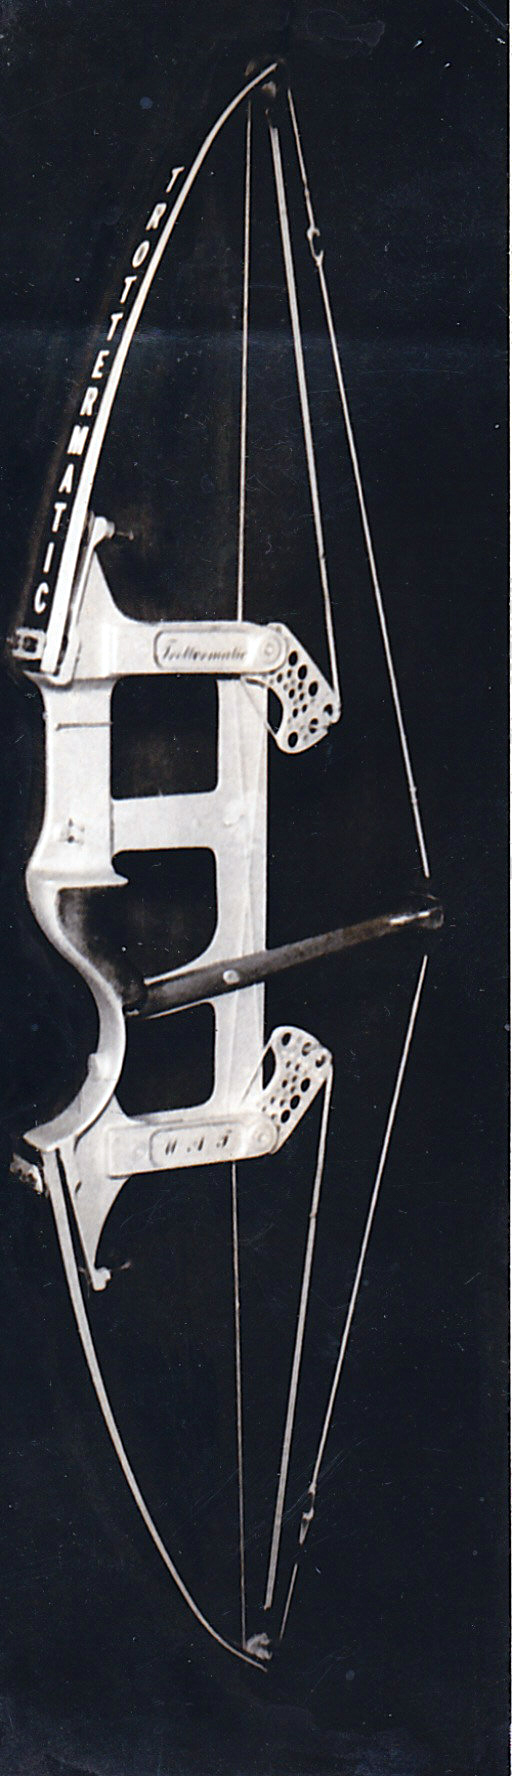 Trottermatic Compound Bow 1977